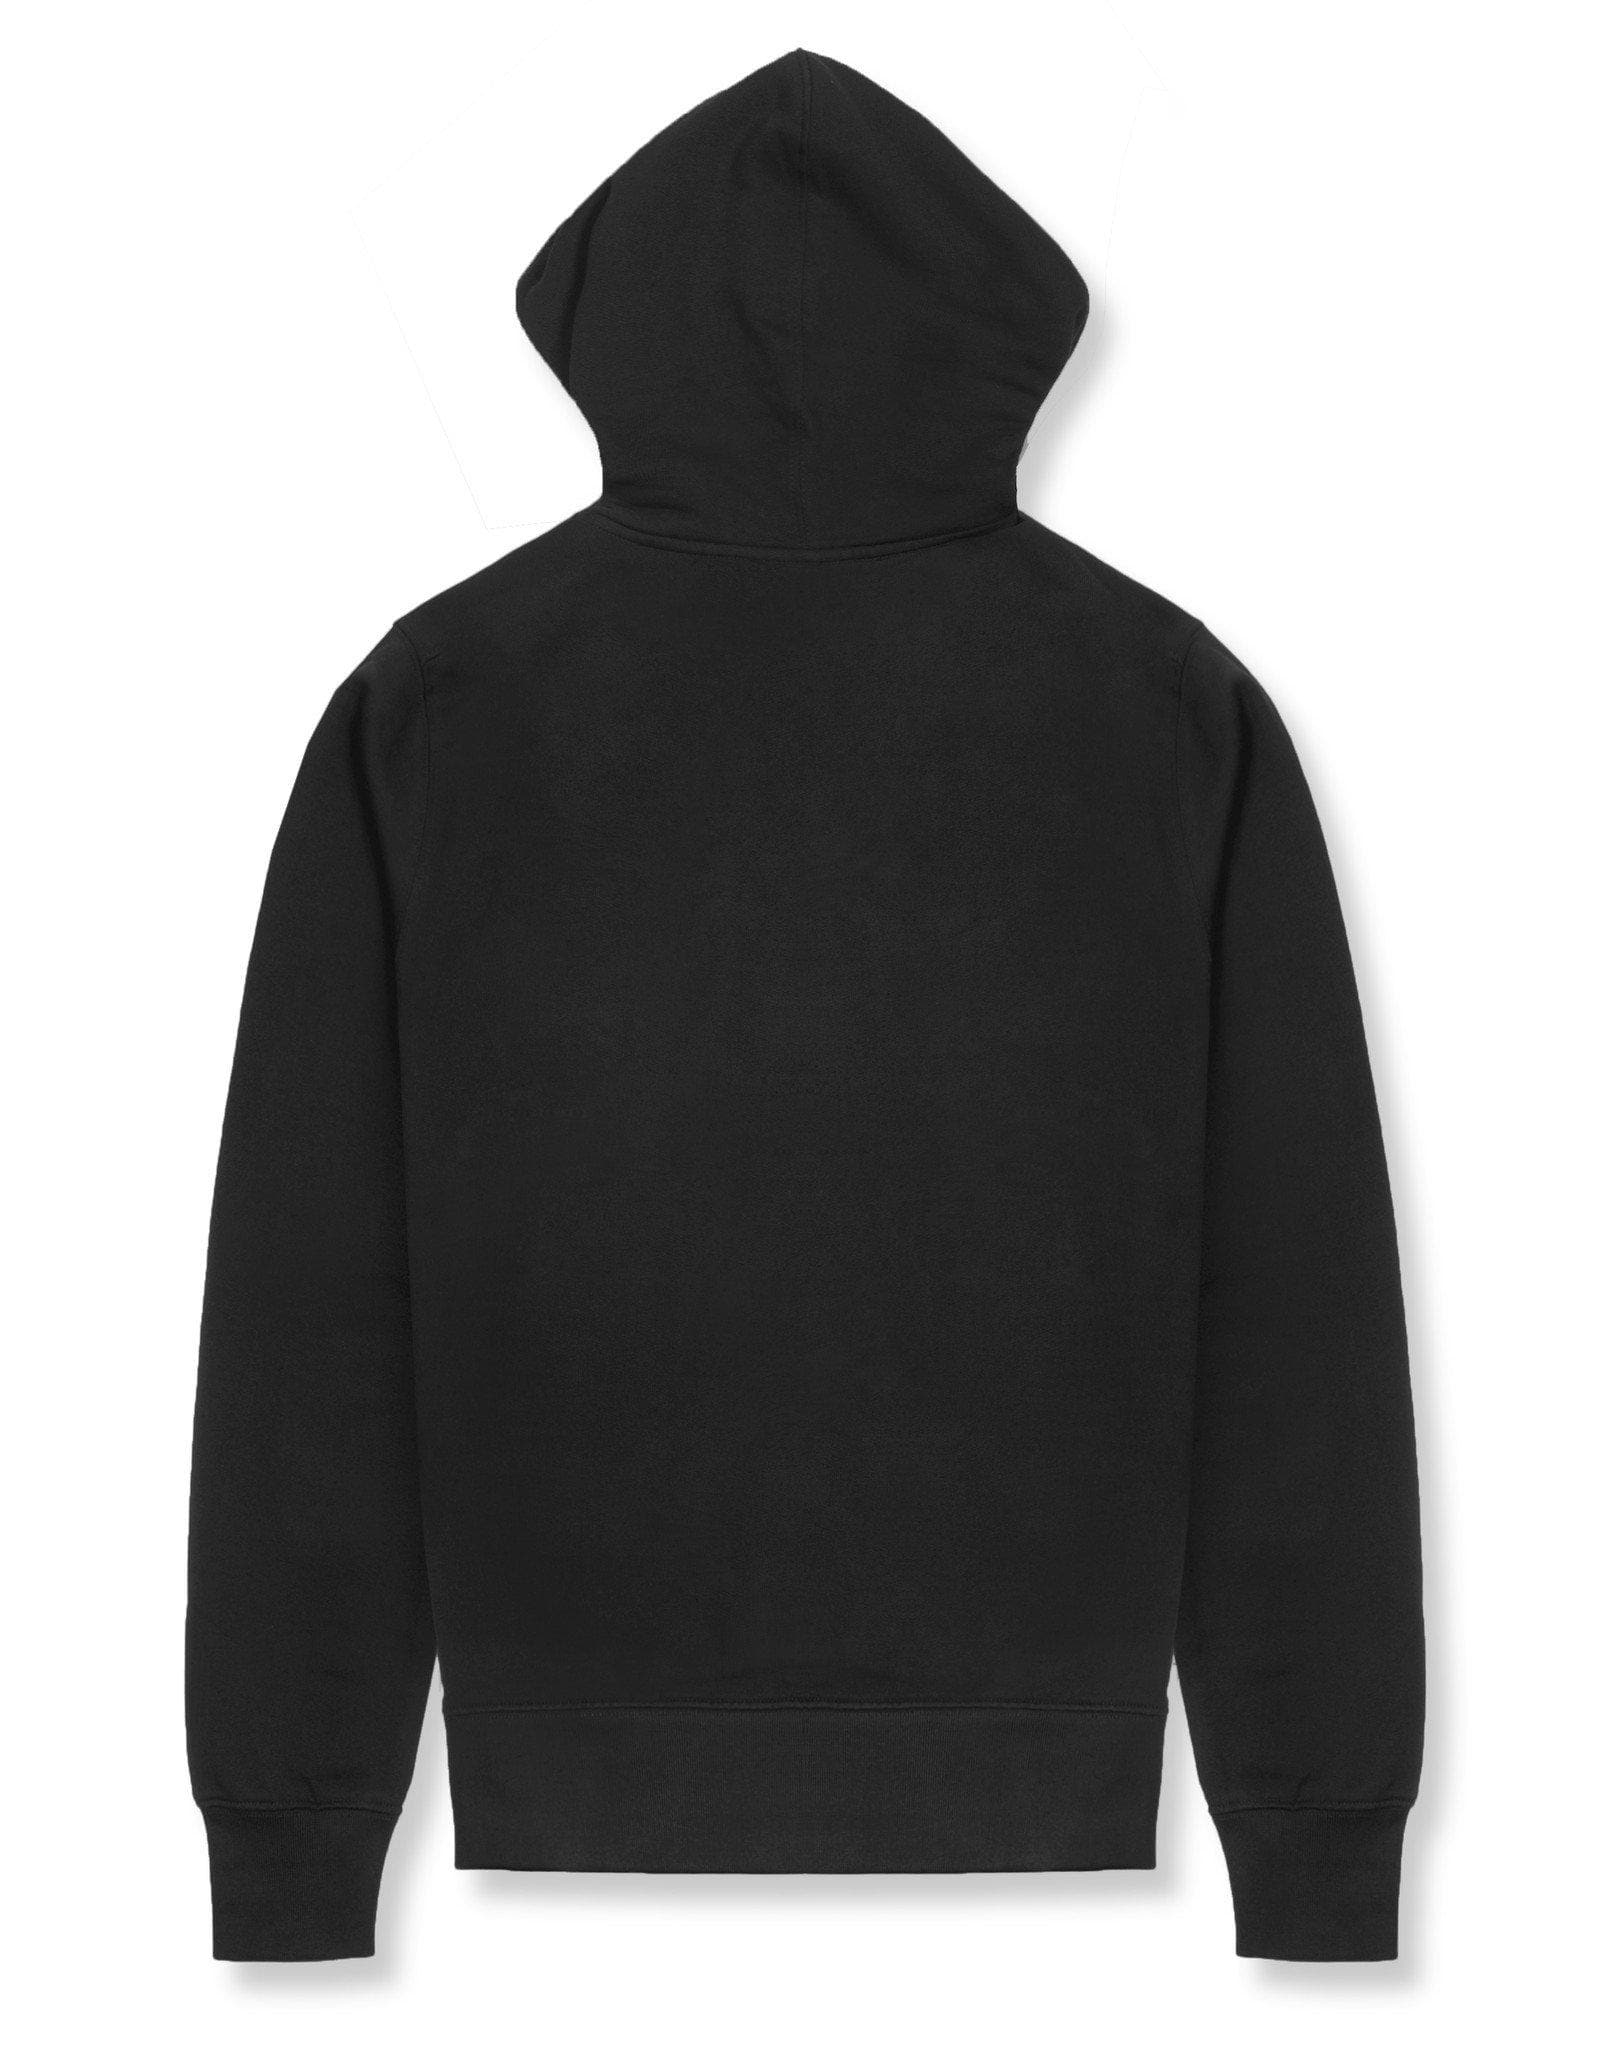 Money Cargo Hoody Zip Through